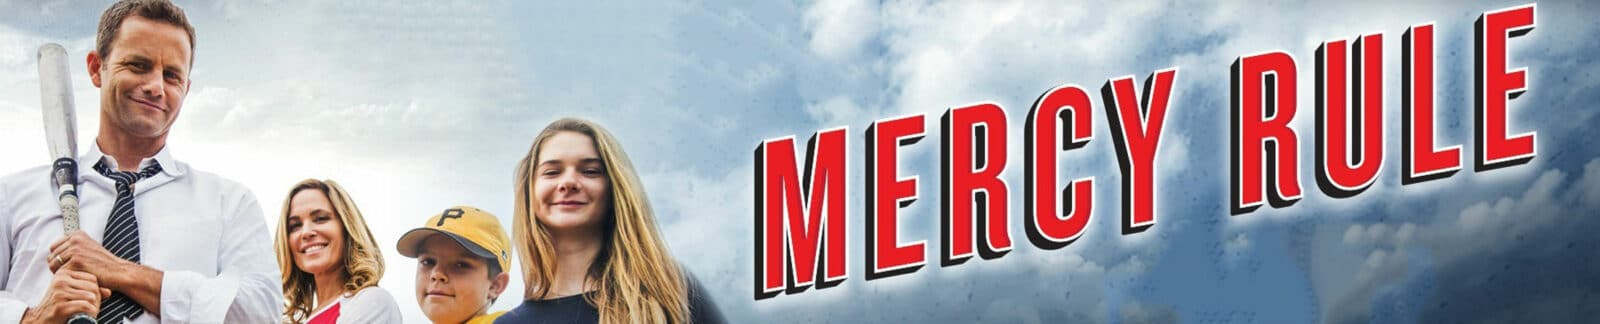 Mercy Rule baseball movie header